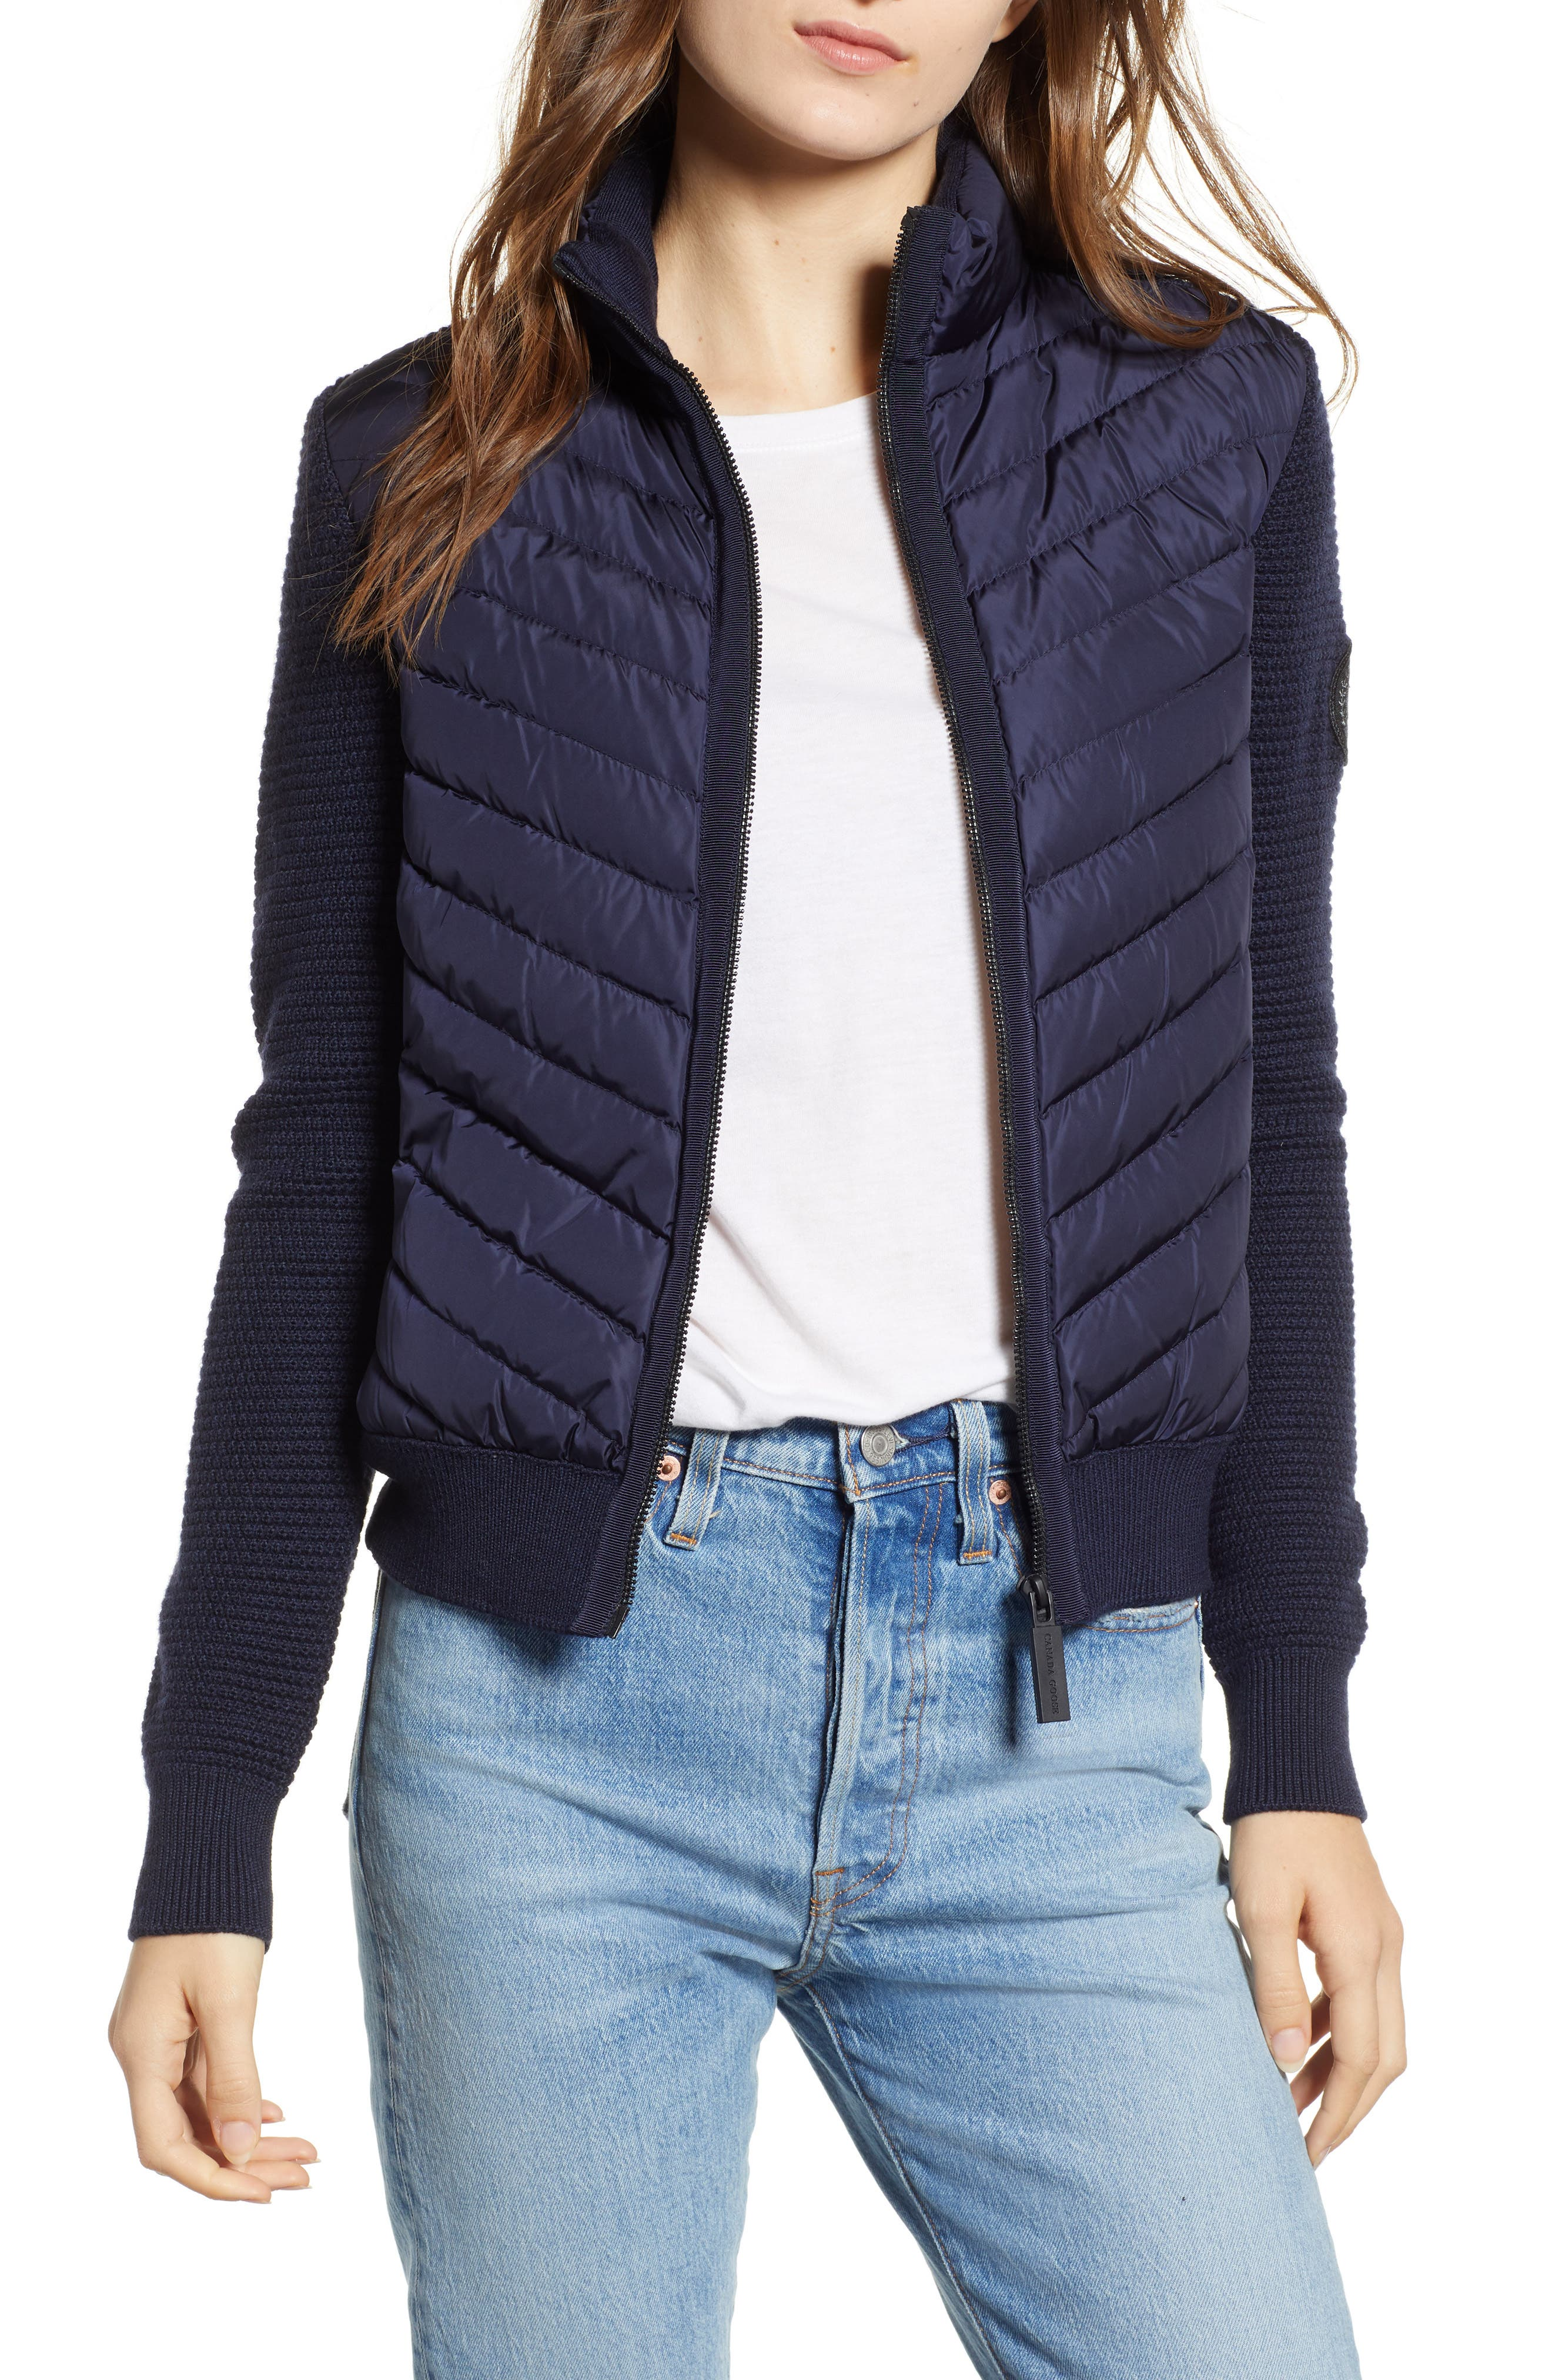 Canada Goose Hybridge Quilted & Knit Jacket, (0) - Blue